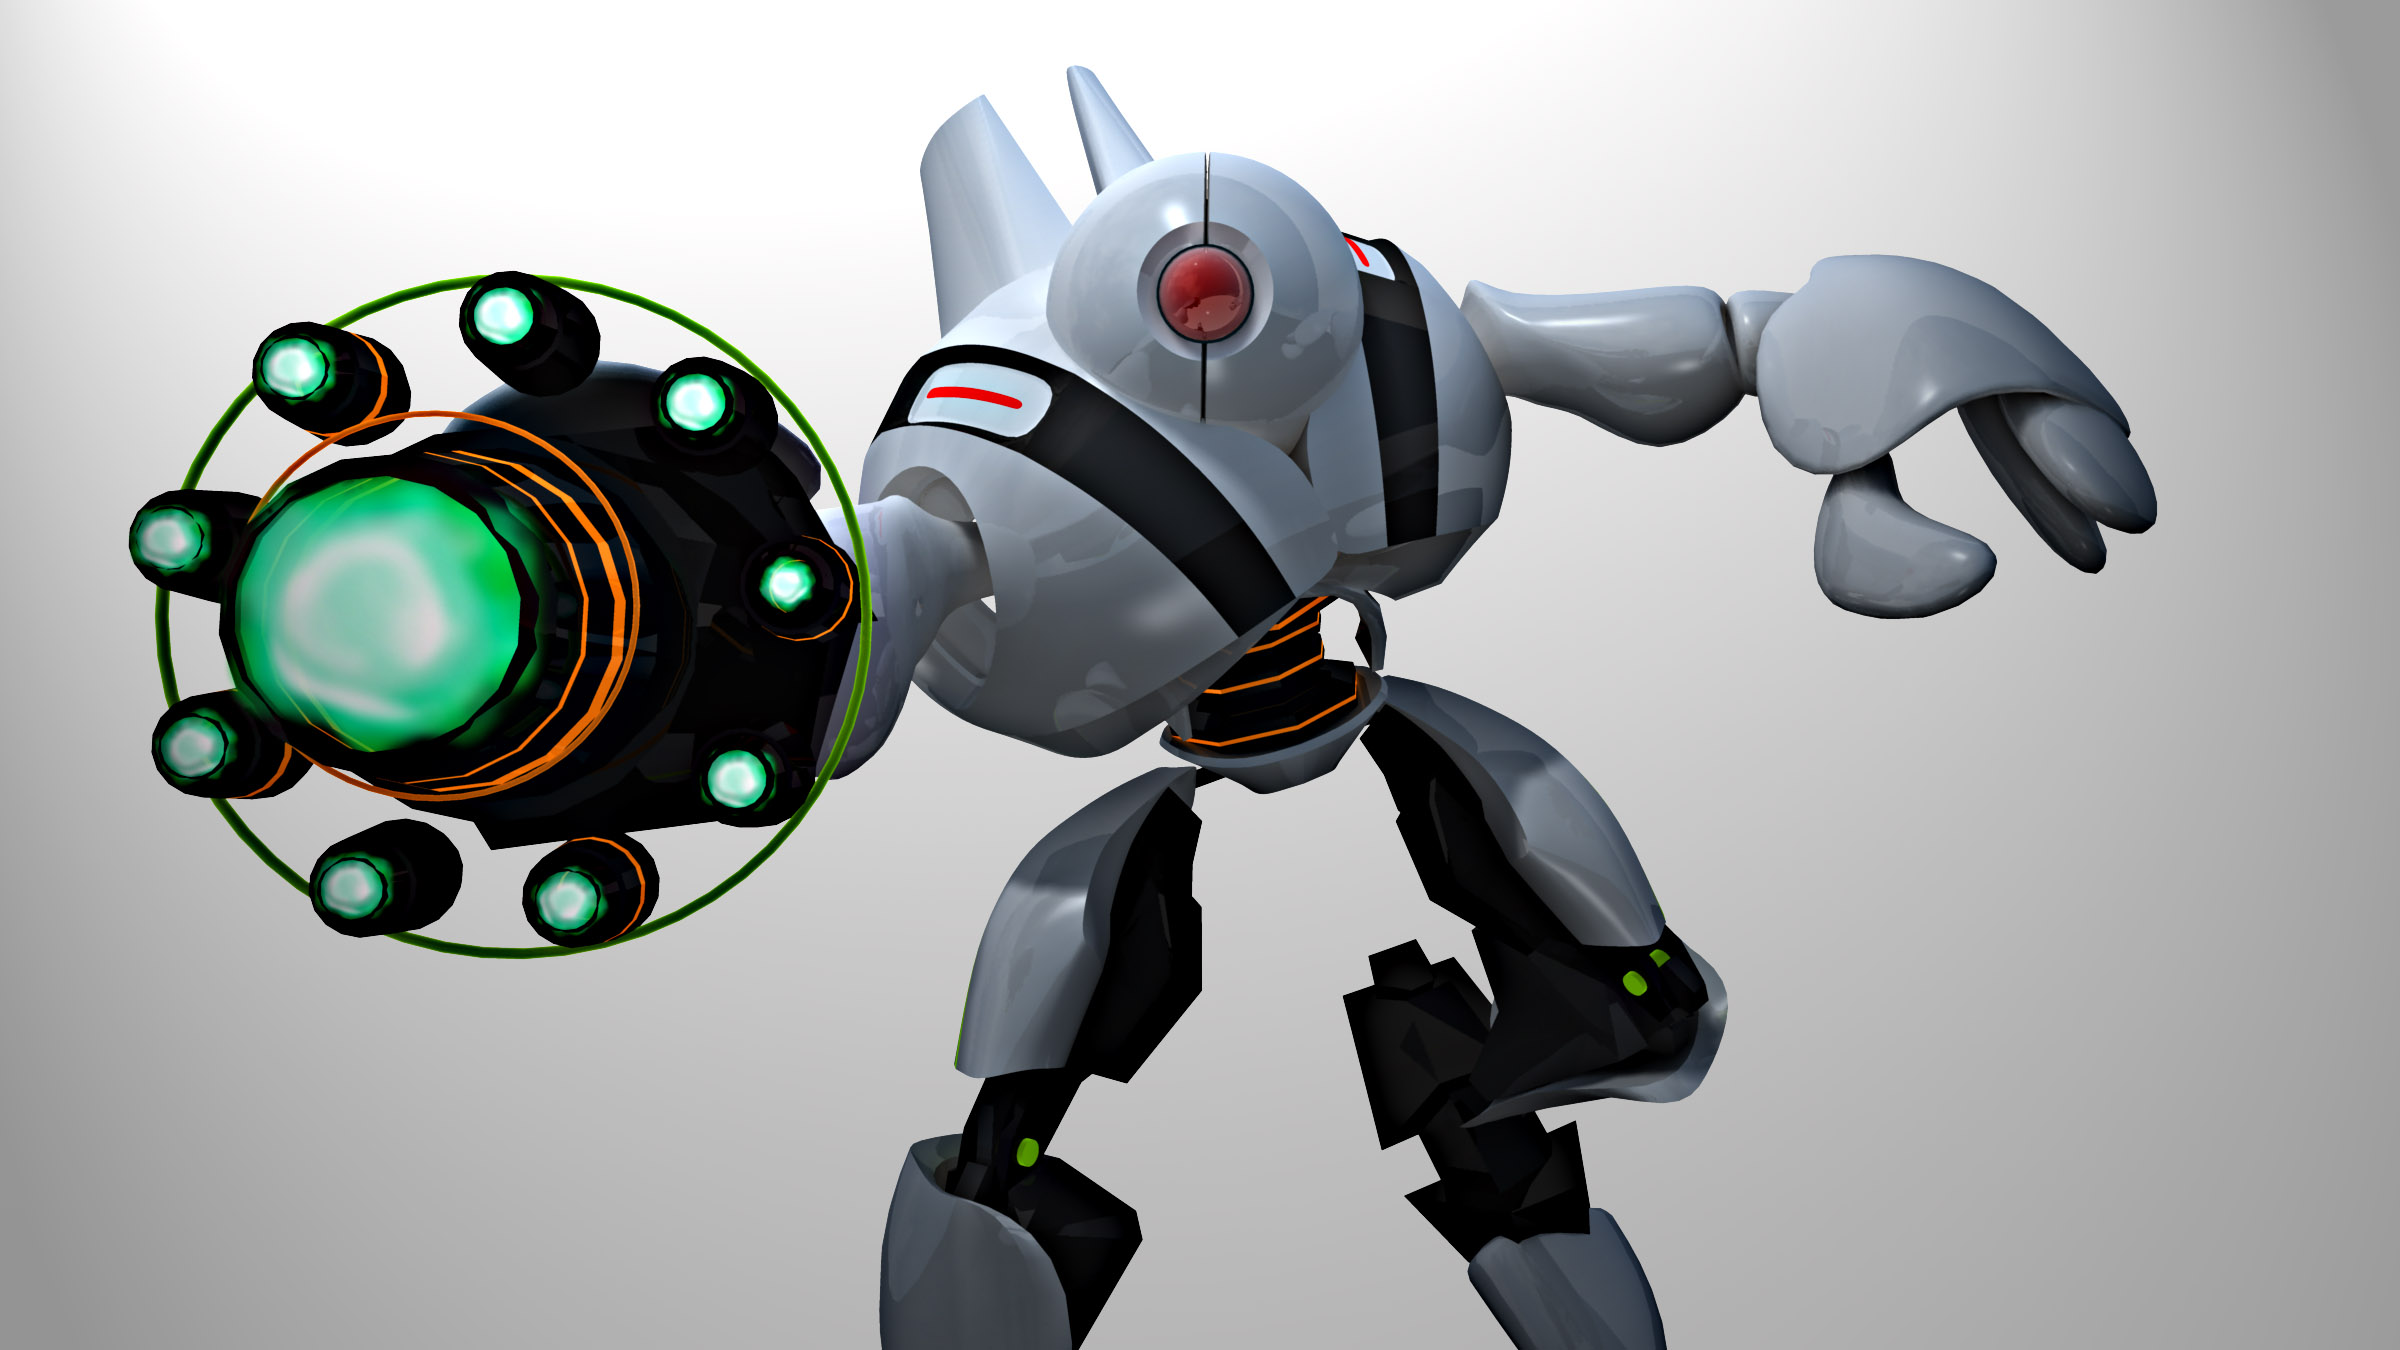 Robot_action_01